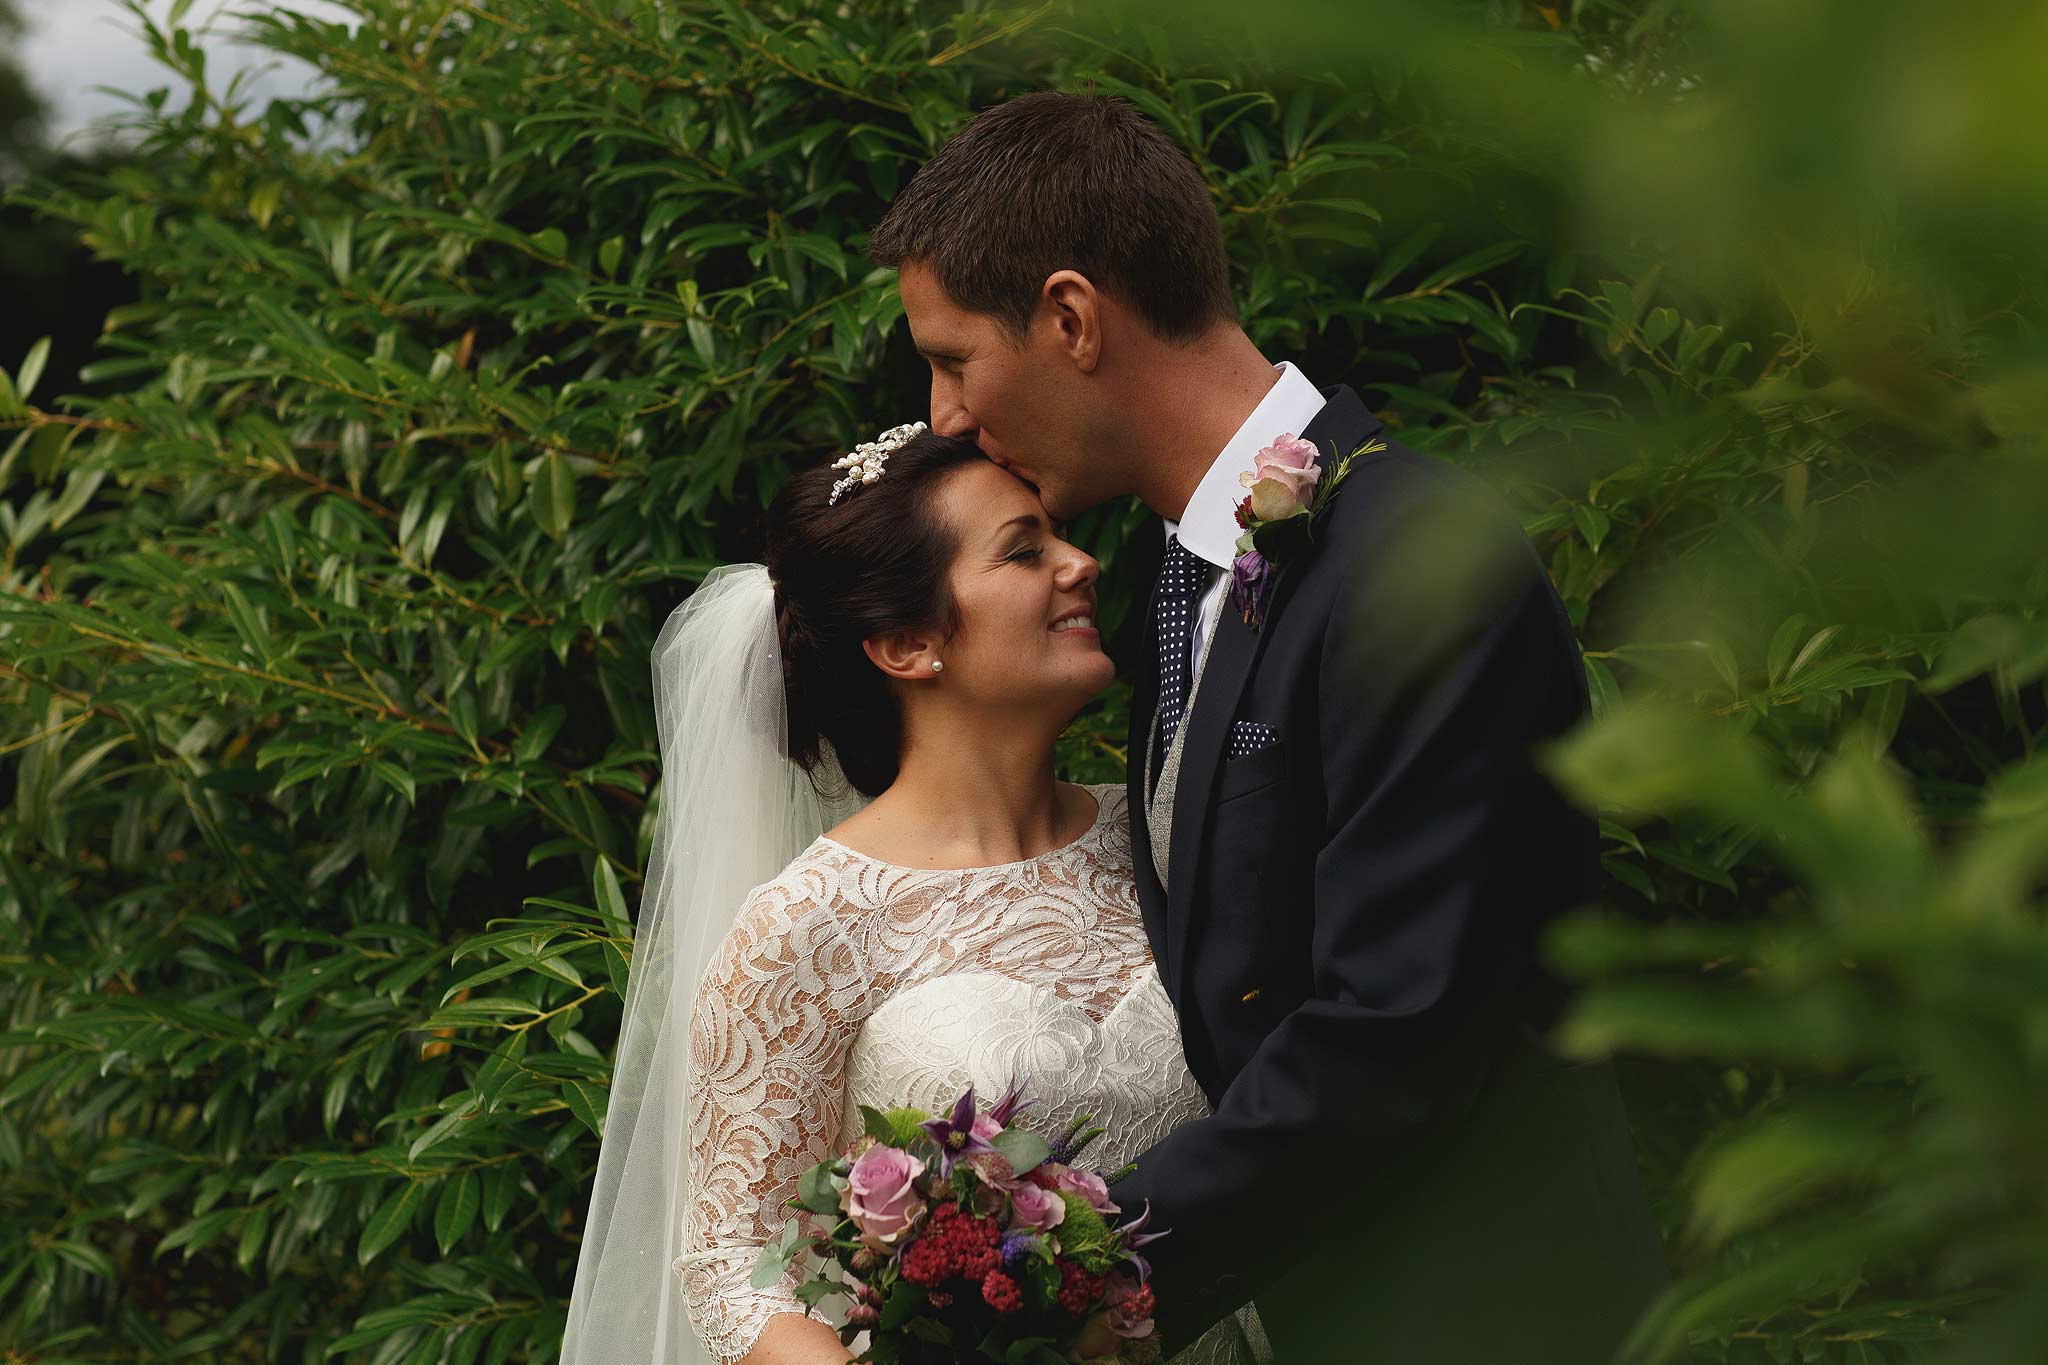 Groom kissing bride on the head in the gardens at colshaw hall